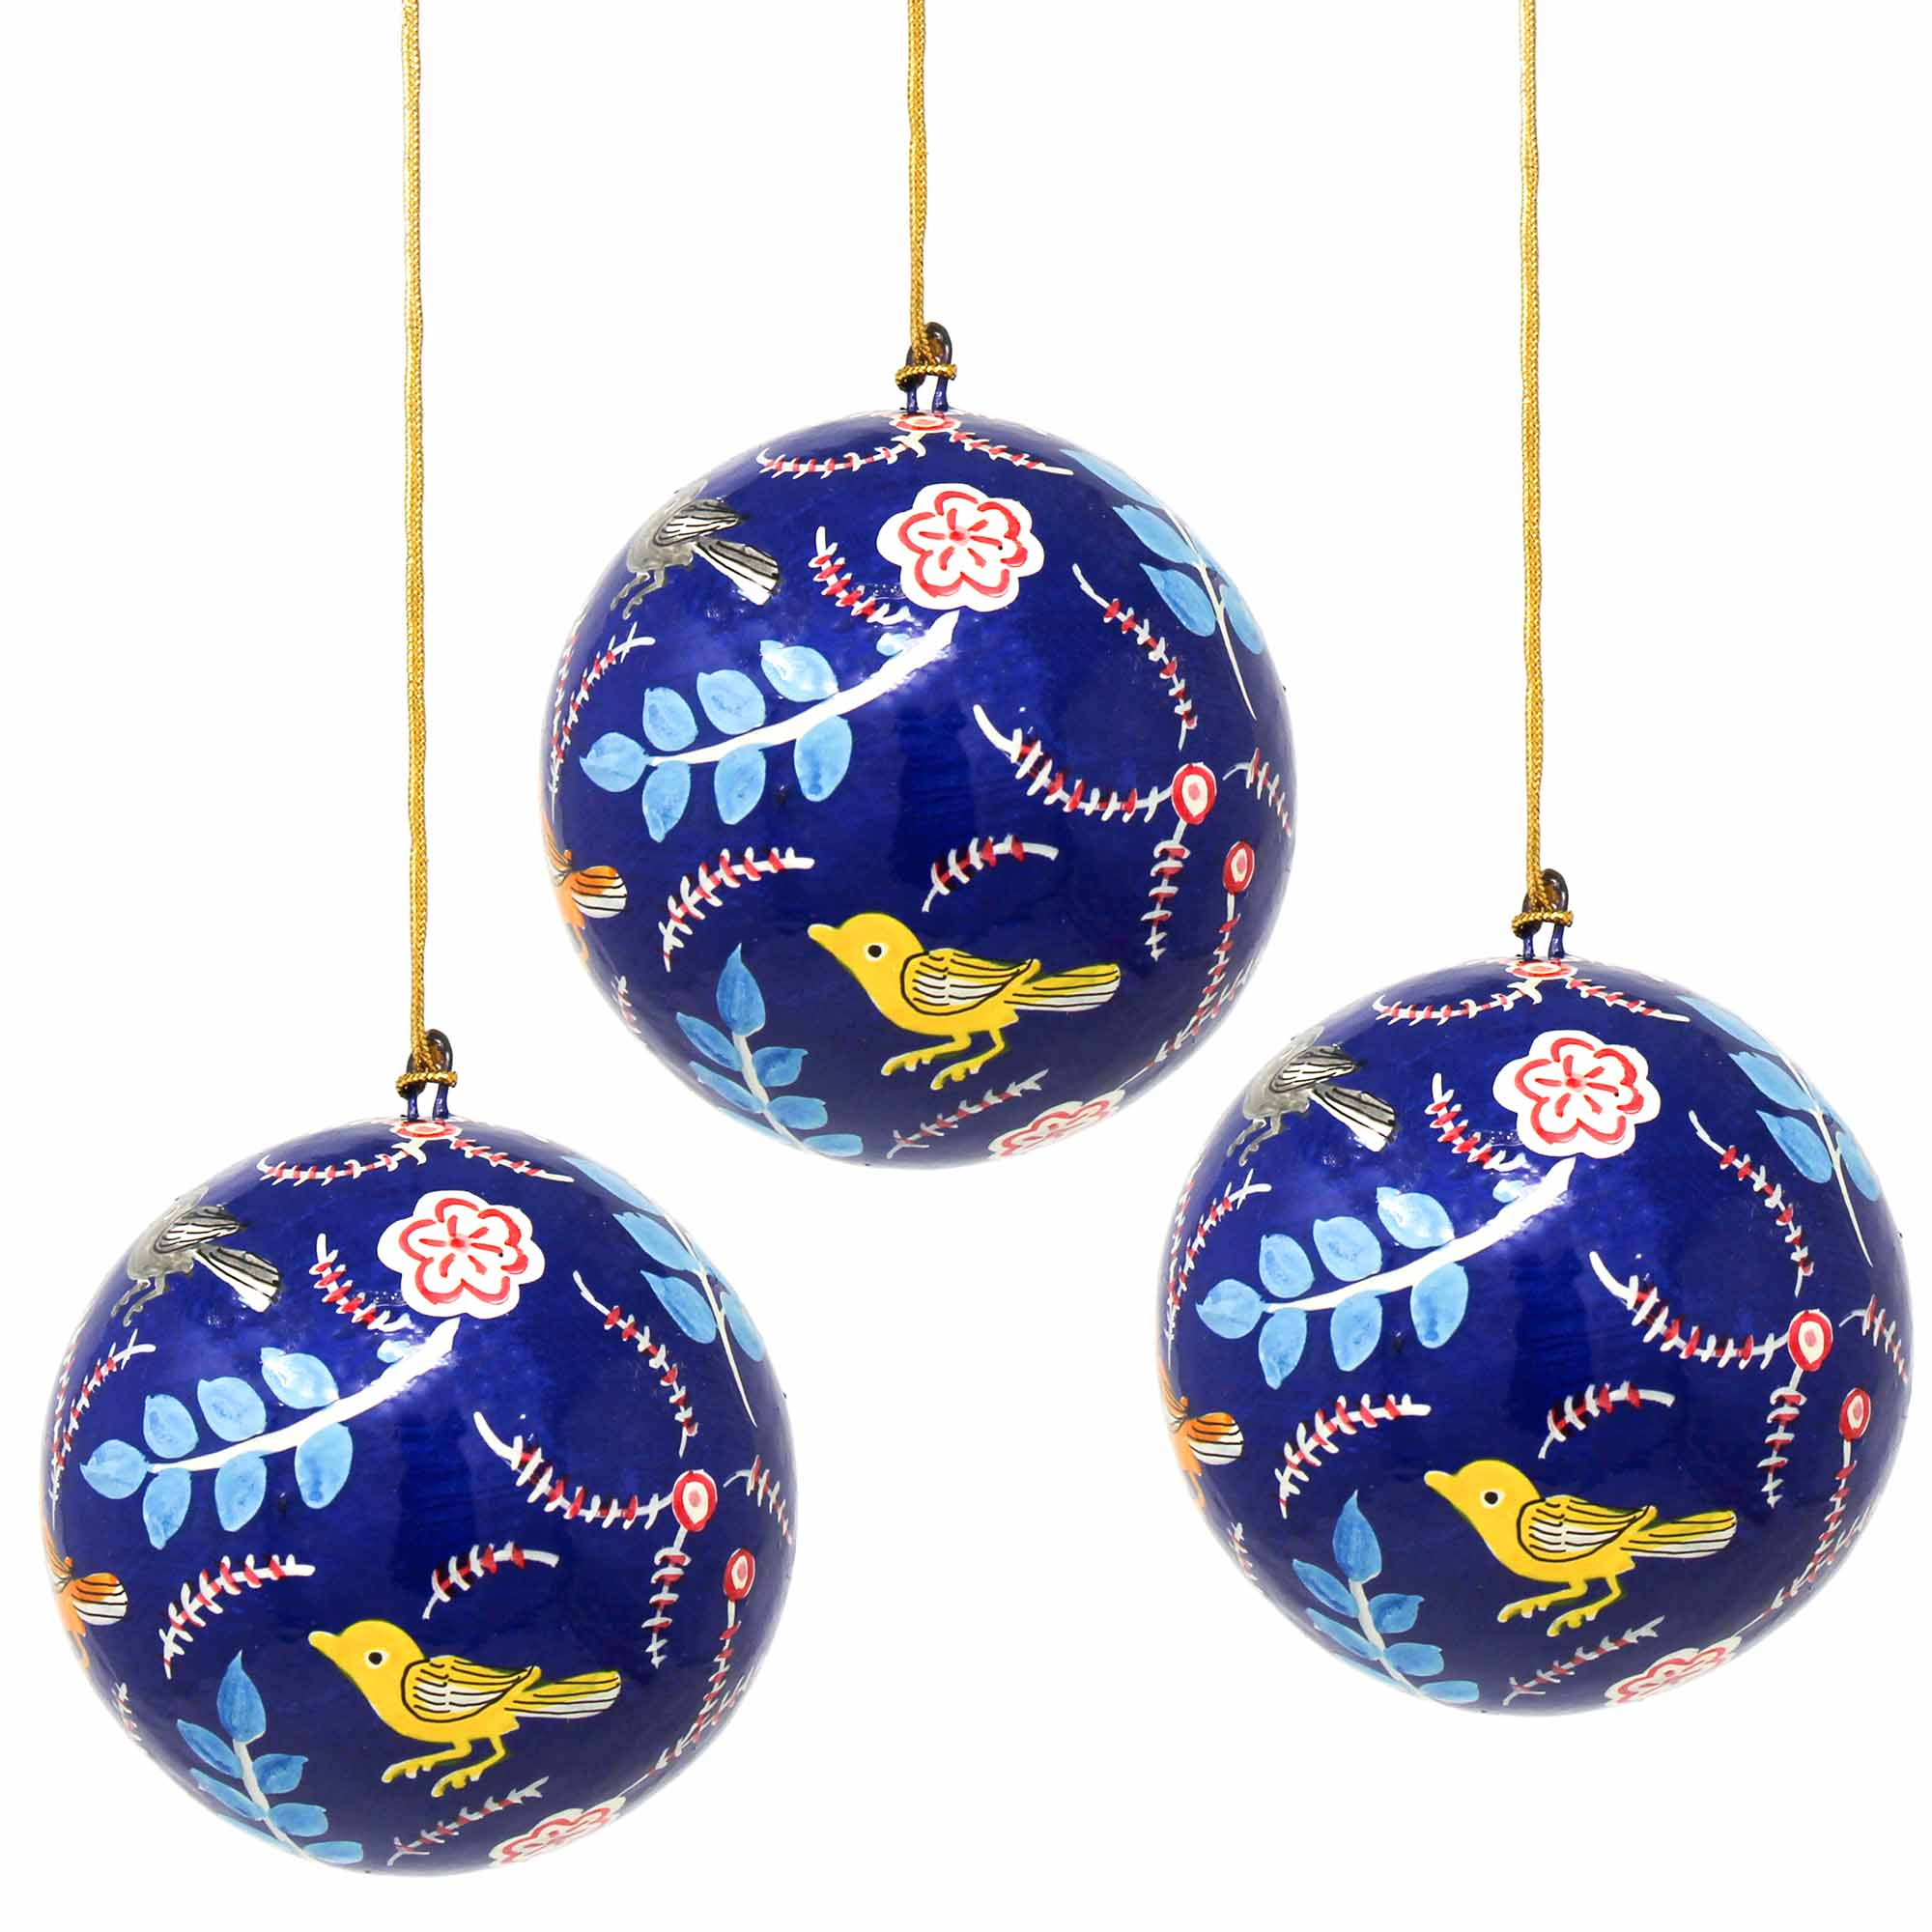 Handpainted Ornament Birds and Flowers, Blue - Pack of 3